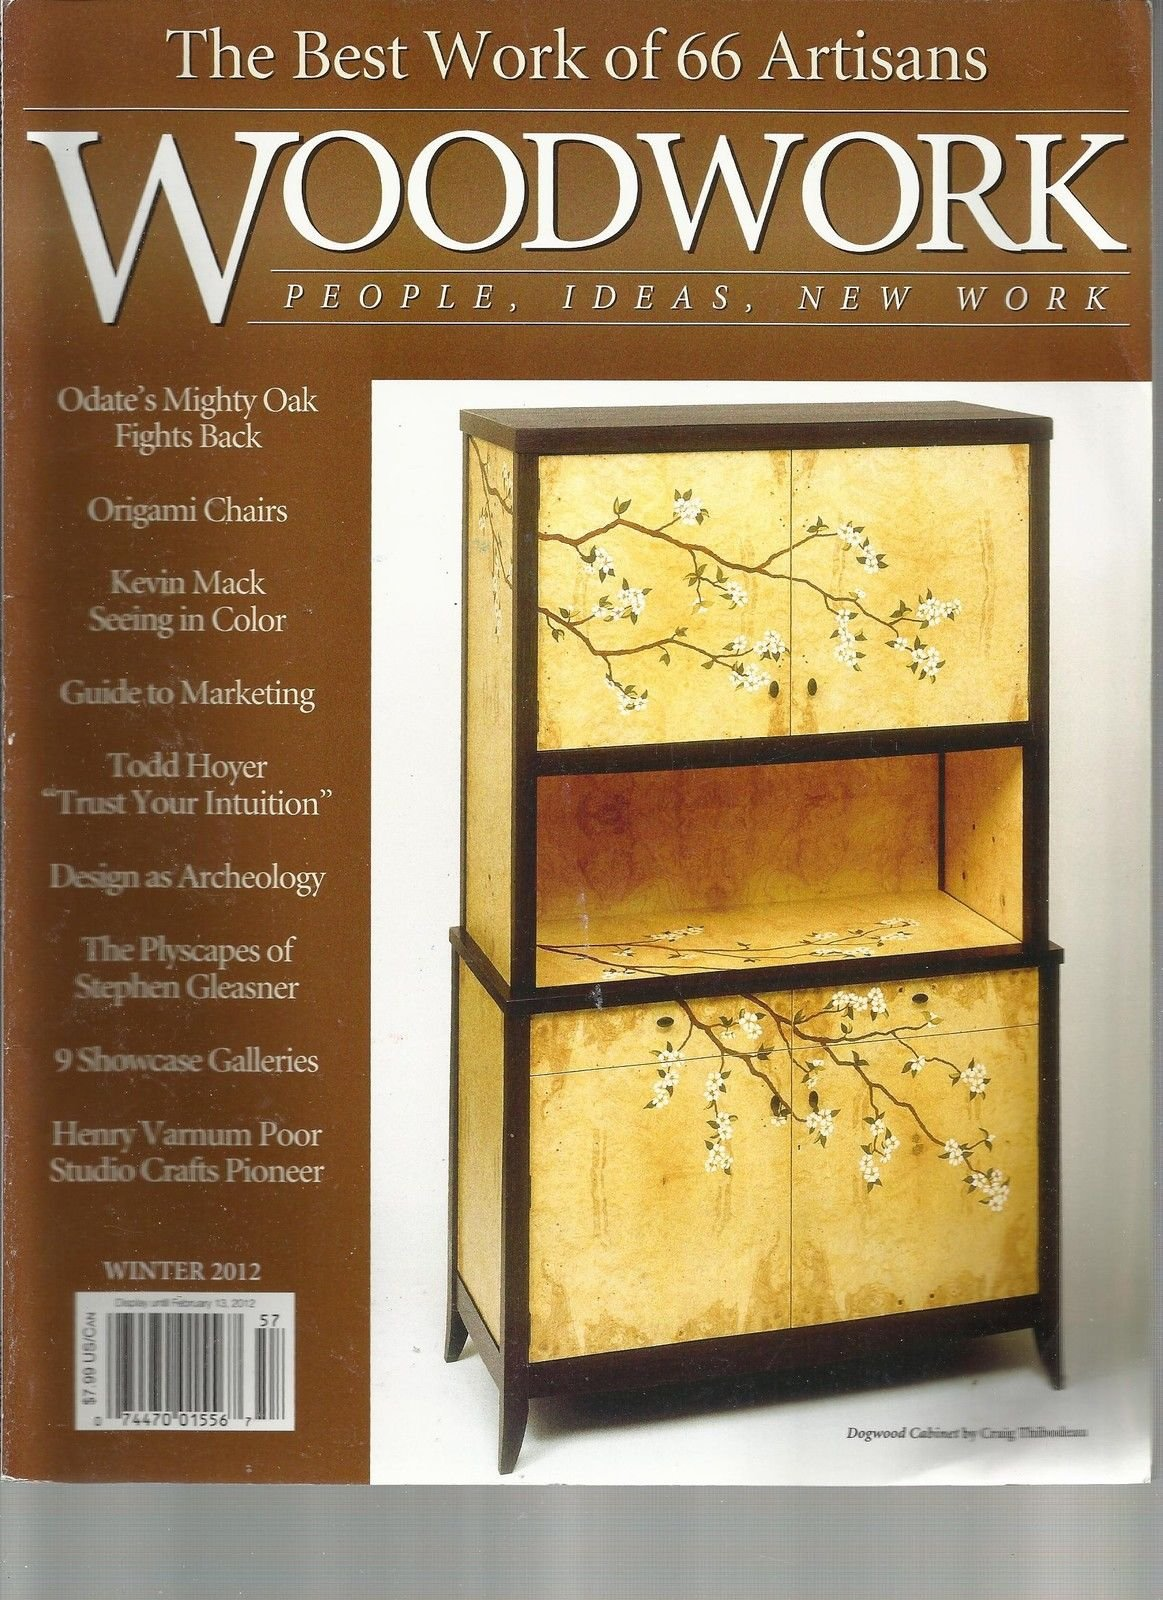 WOOD WORK, WINTER, 2012 (THE BEST WORK OF 66 ARTISANS) PEOPLE * IDEAS * by Generic (Image #1)